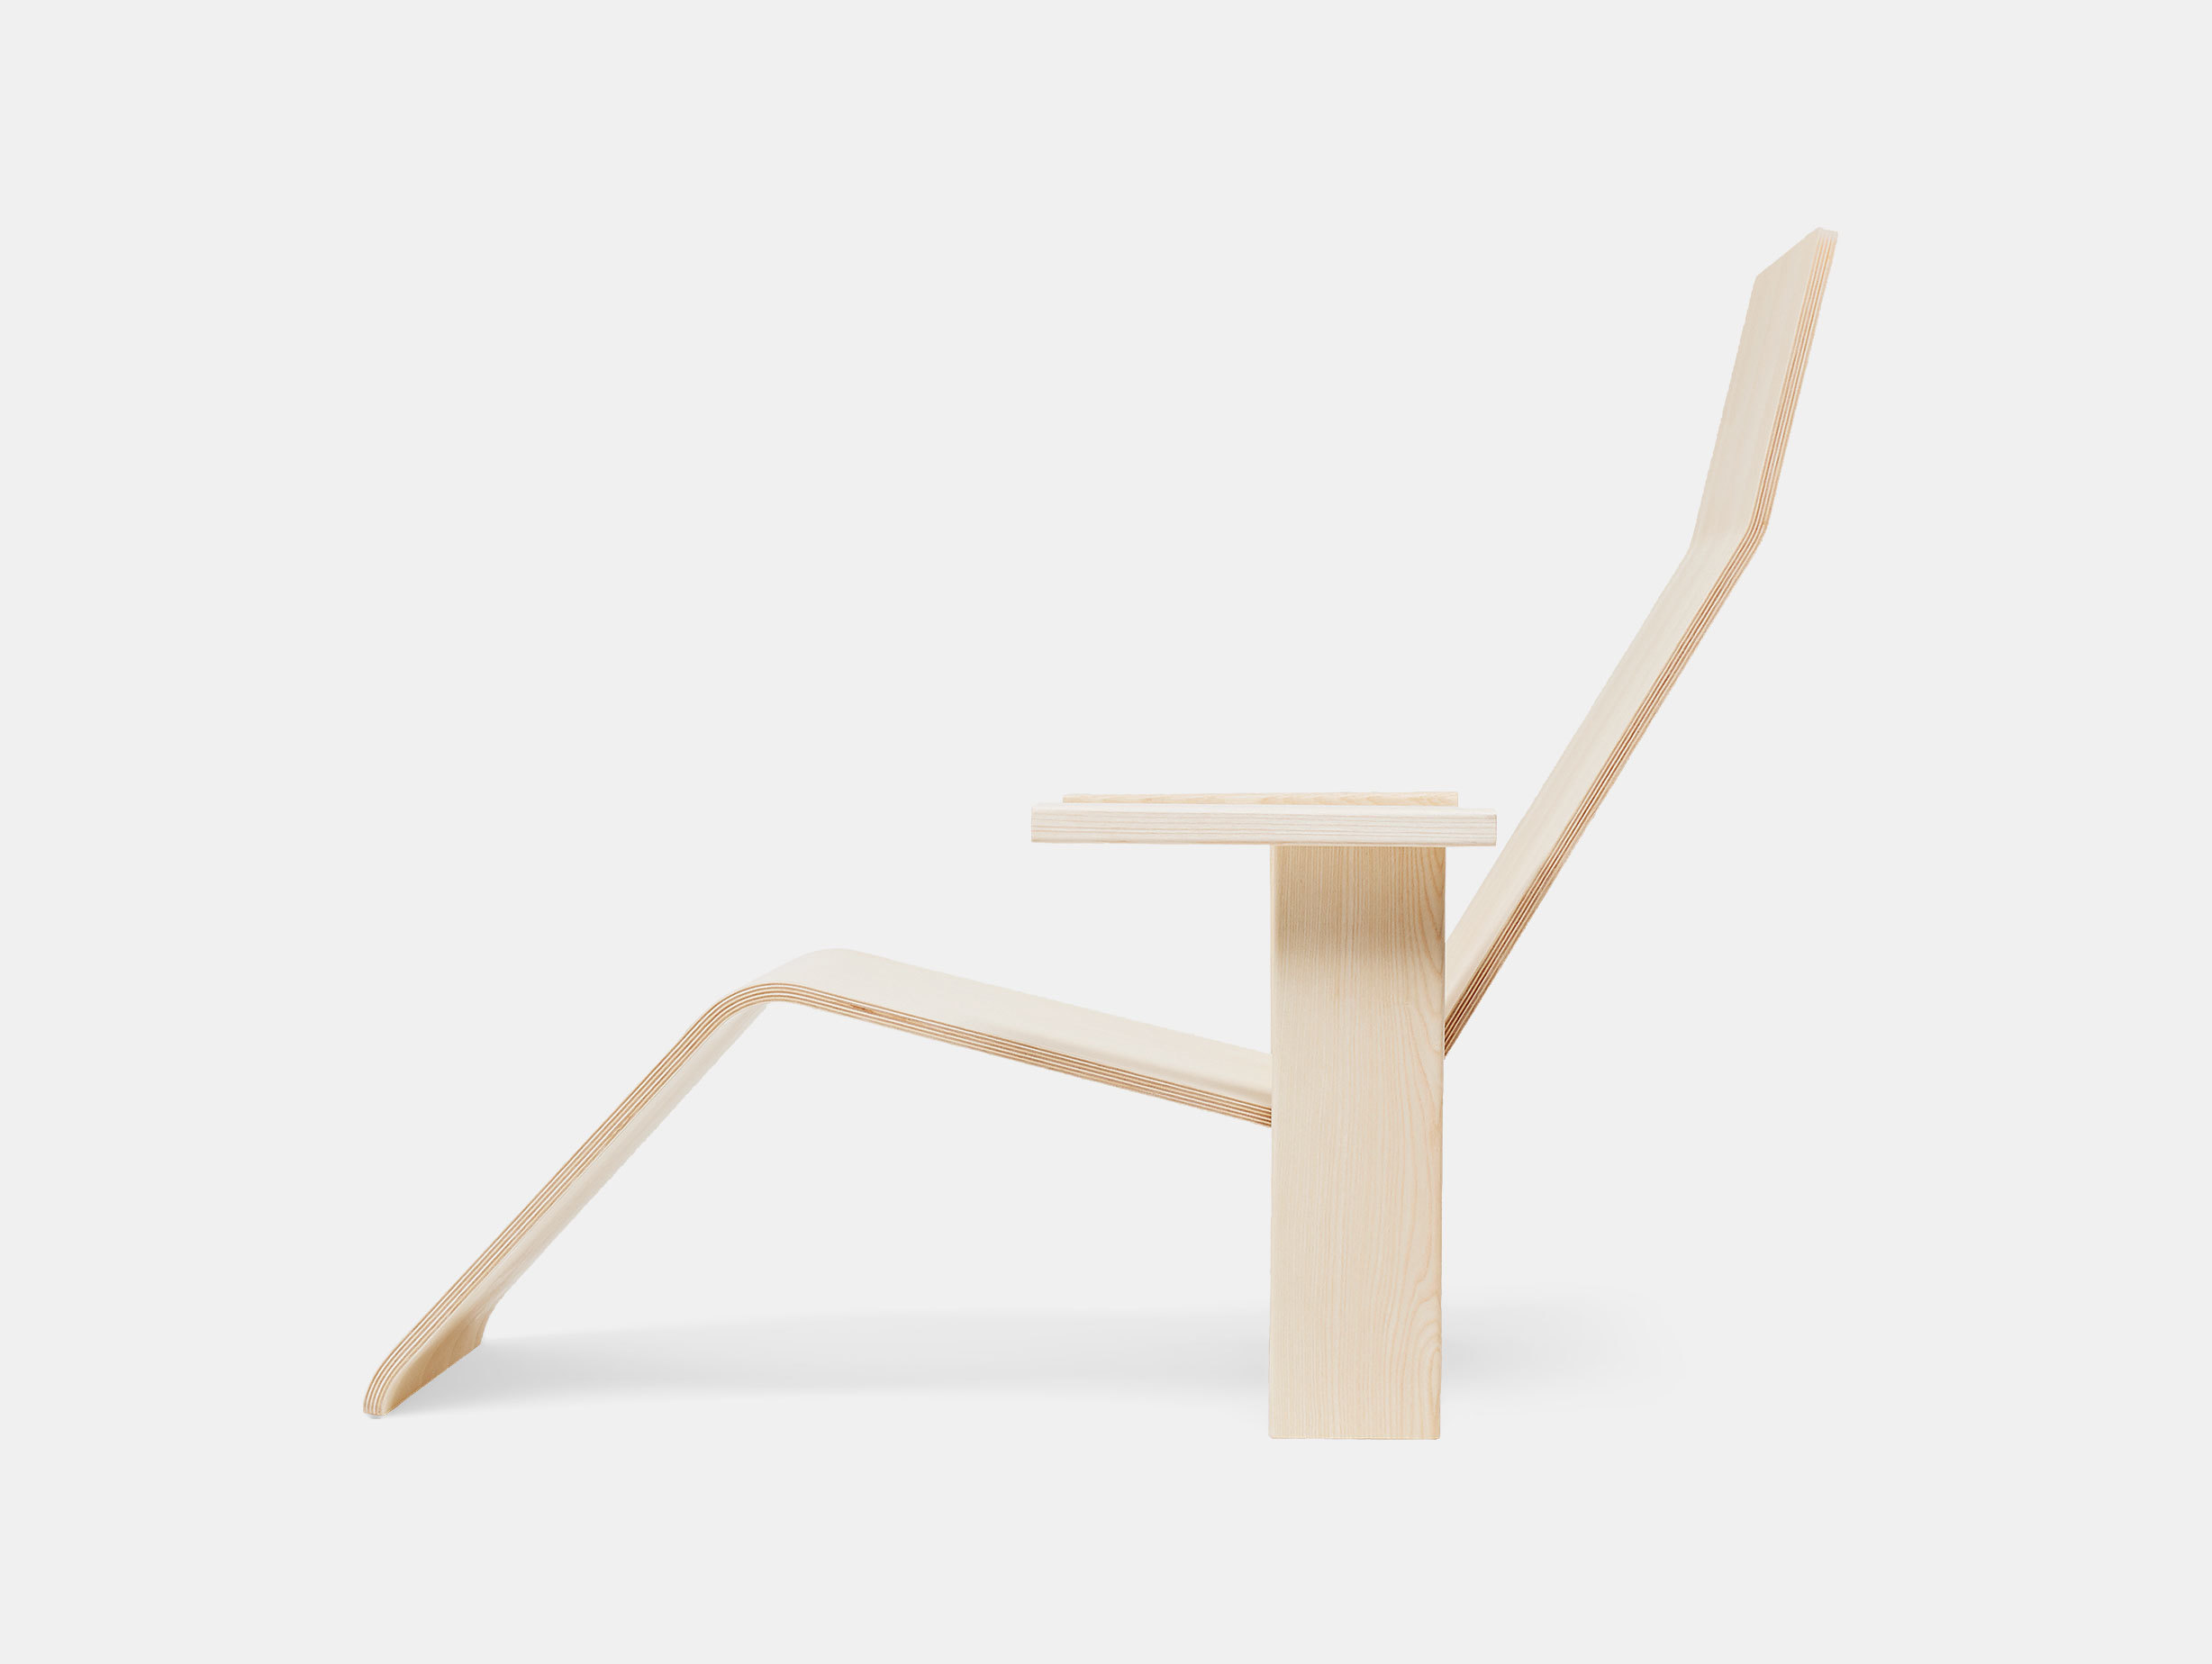 Quindici Chaise Longue Italian Furniture Brands Furniture Collection Wooden Plane